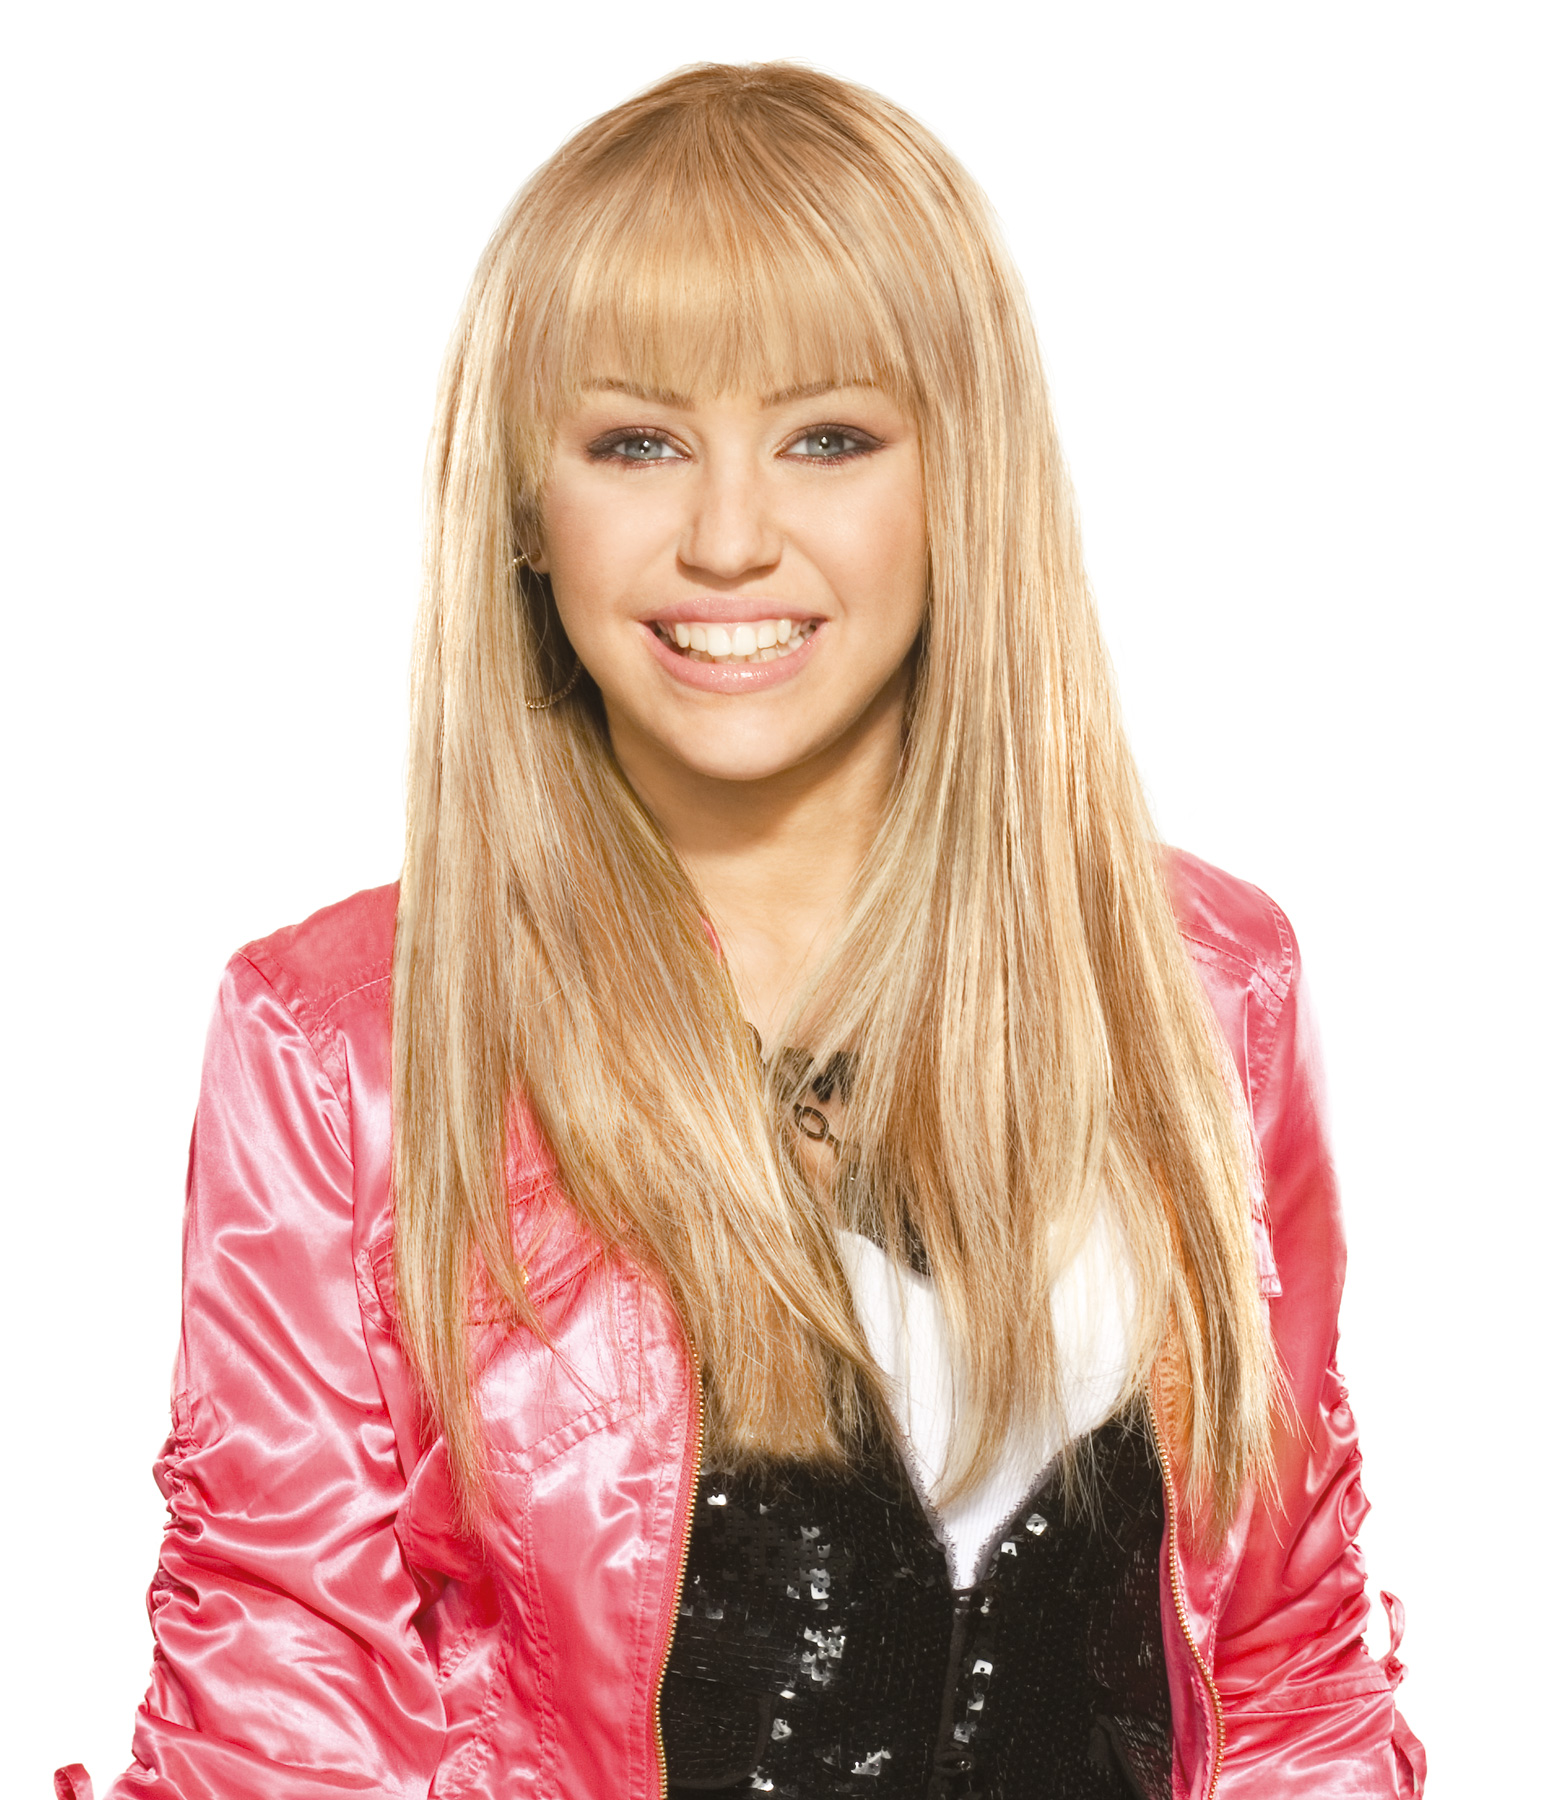 Hannah Montana 2: Meet Miley Cyrus Enhanced, Soundtrack